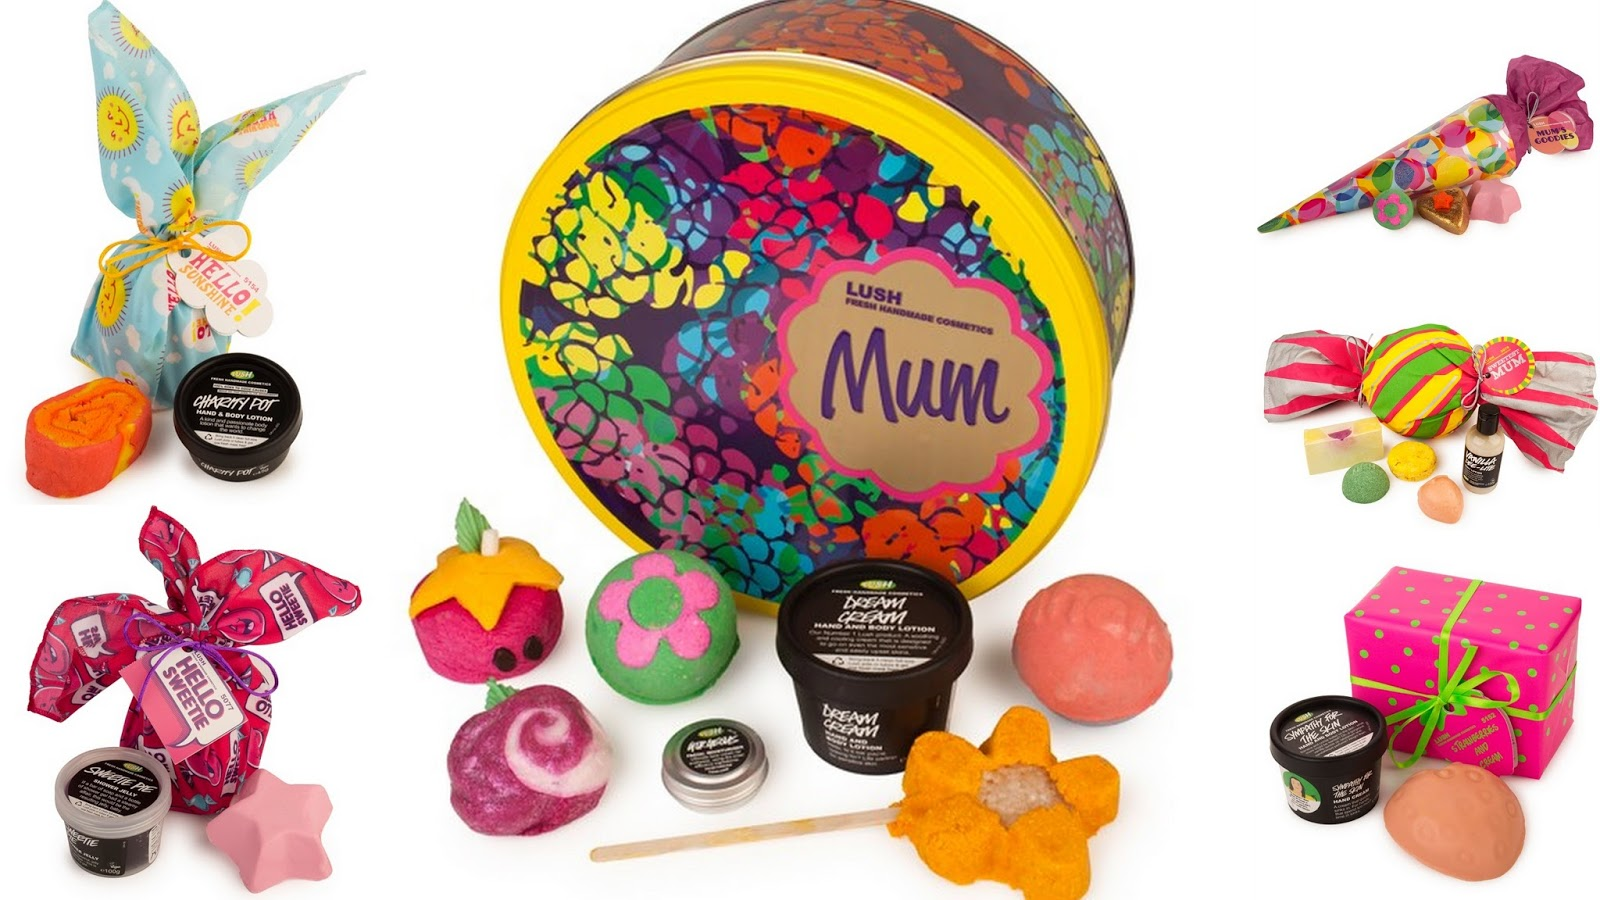 Lush's Mother's Day Range 2014, gifts